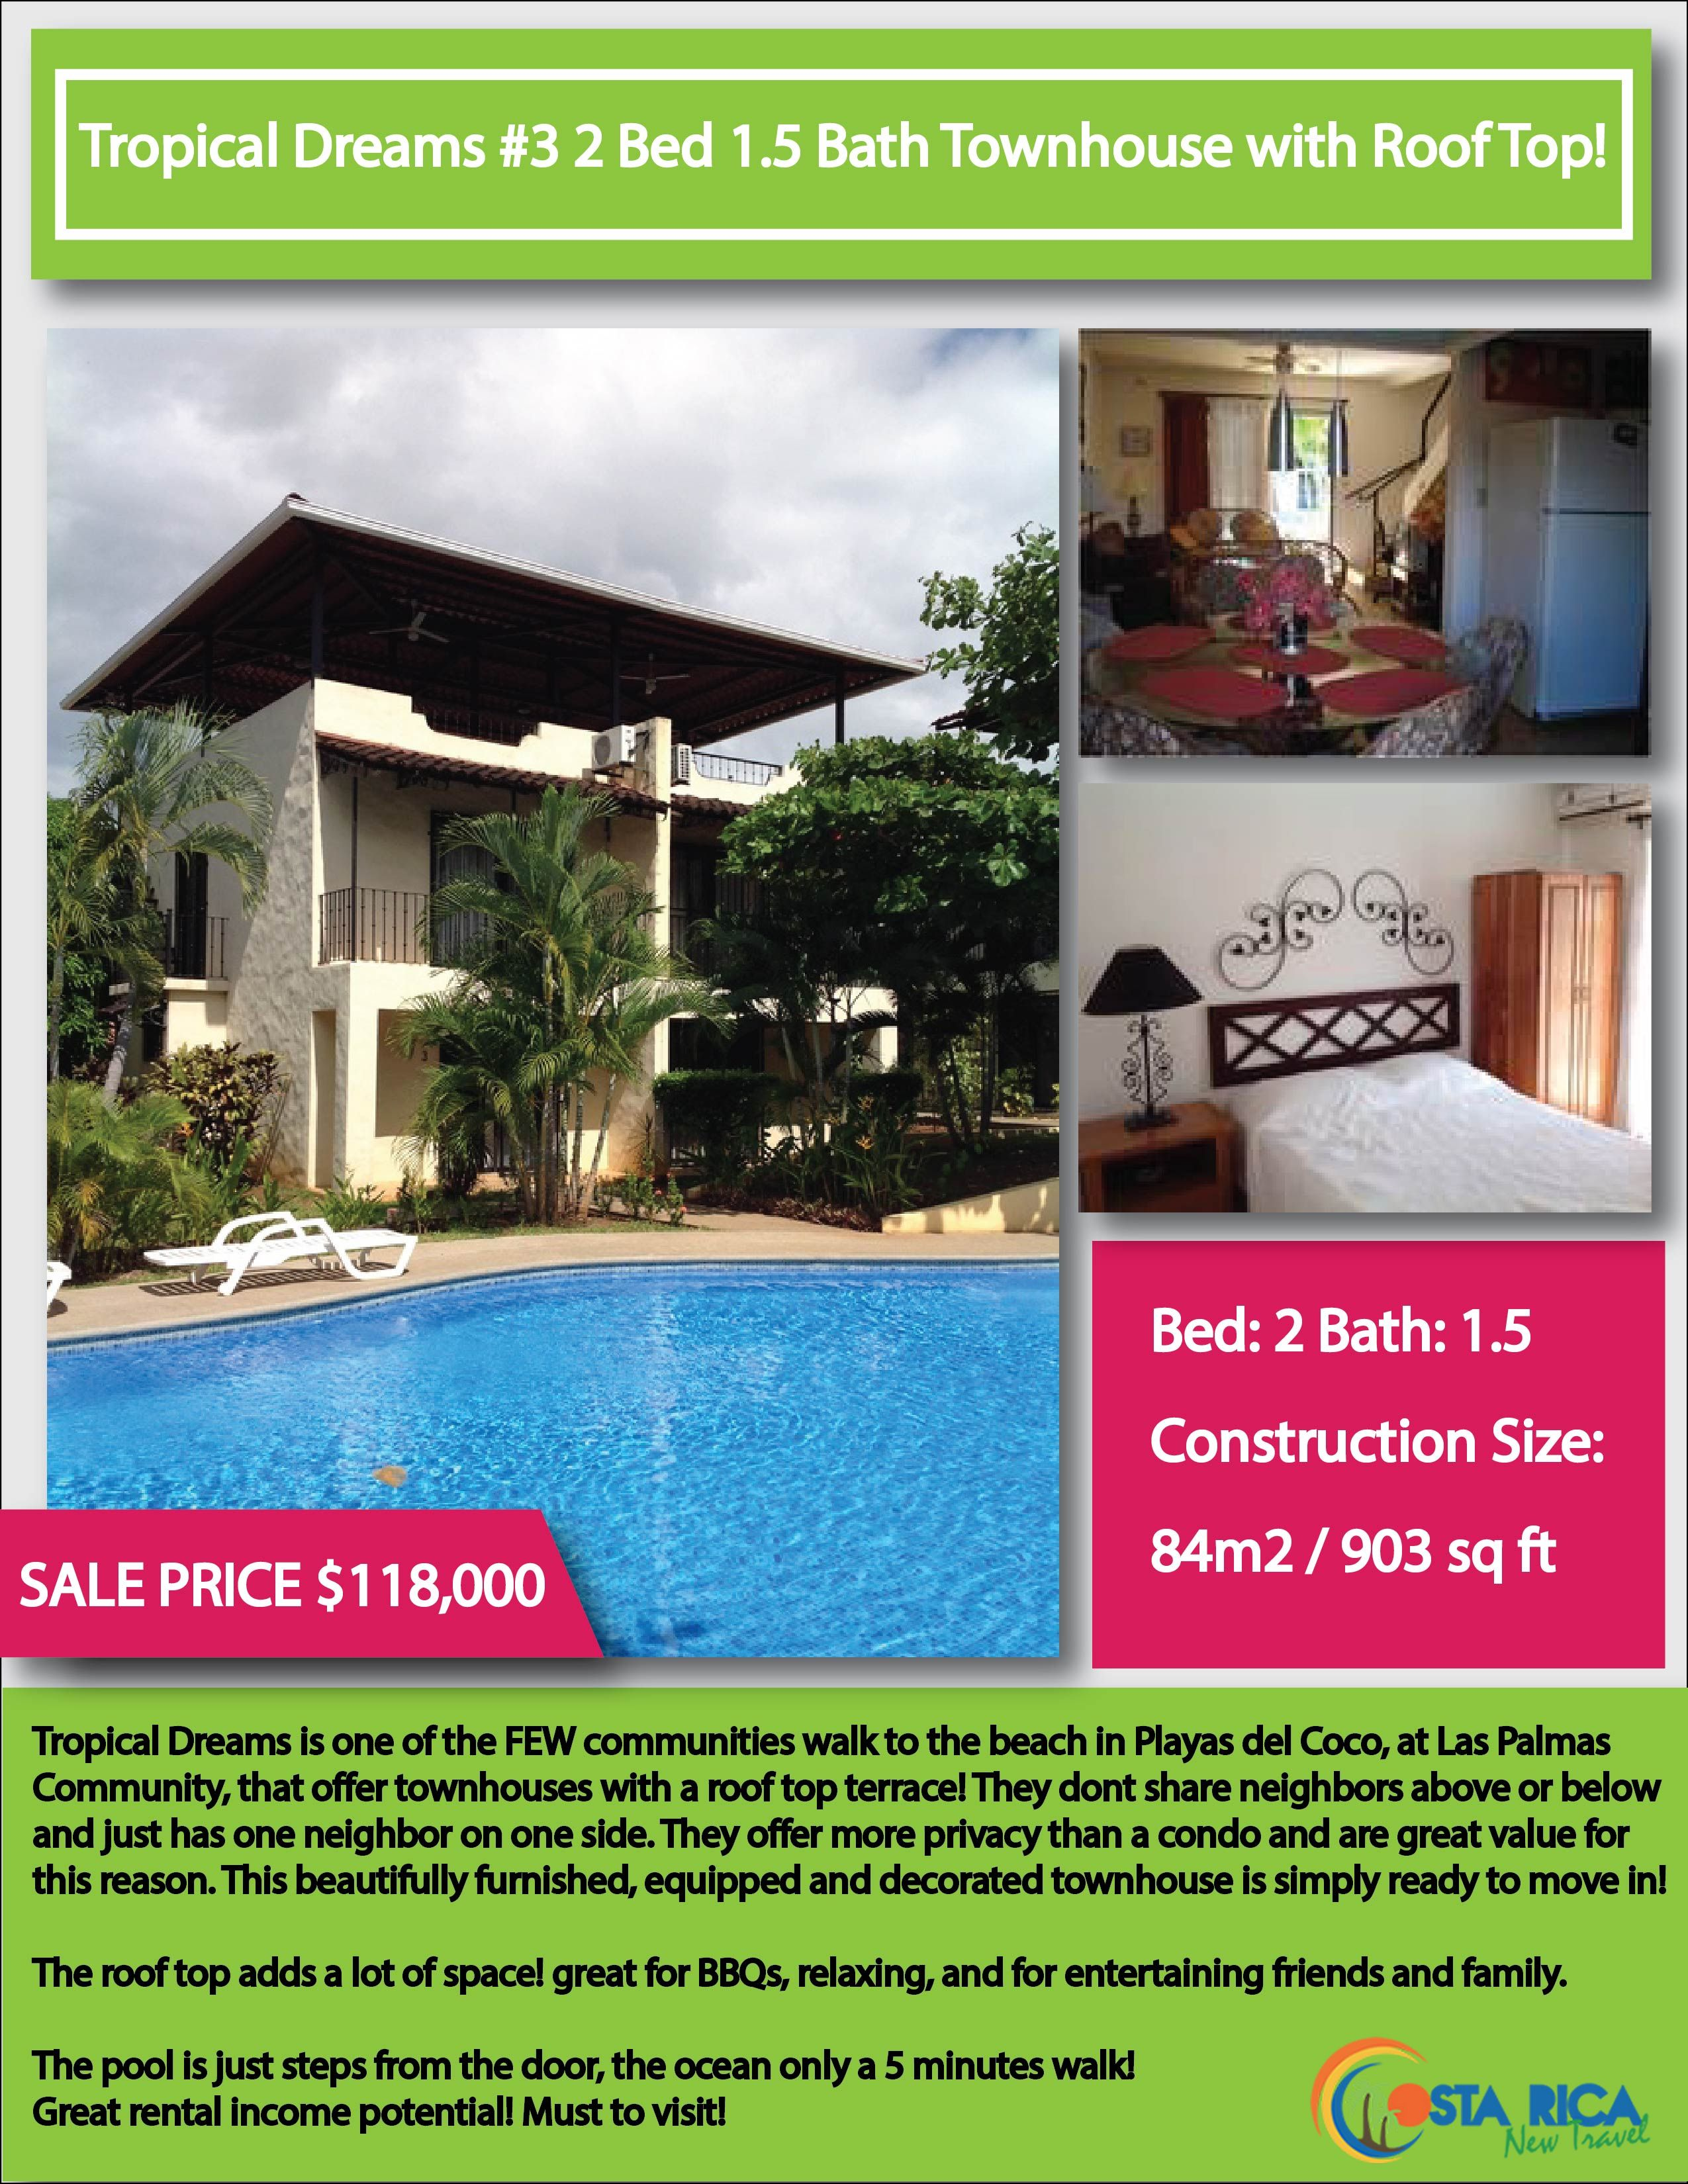 Tropical Dreams #3 - 2 Bed 1.5 Bath with Roof Terrace $118,000 (CRNT)